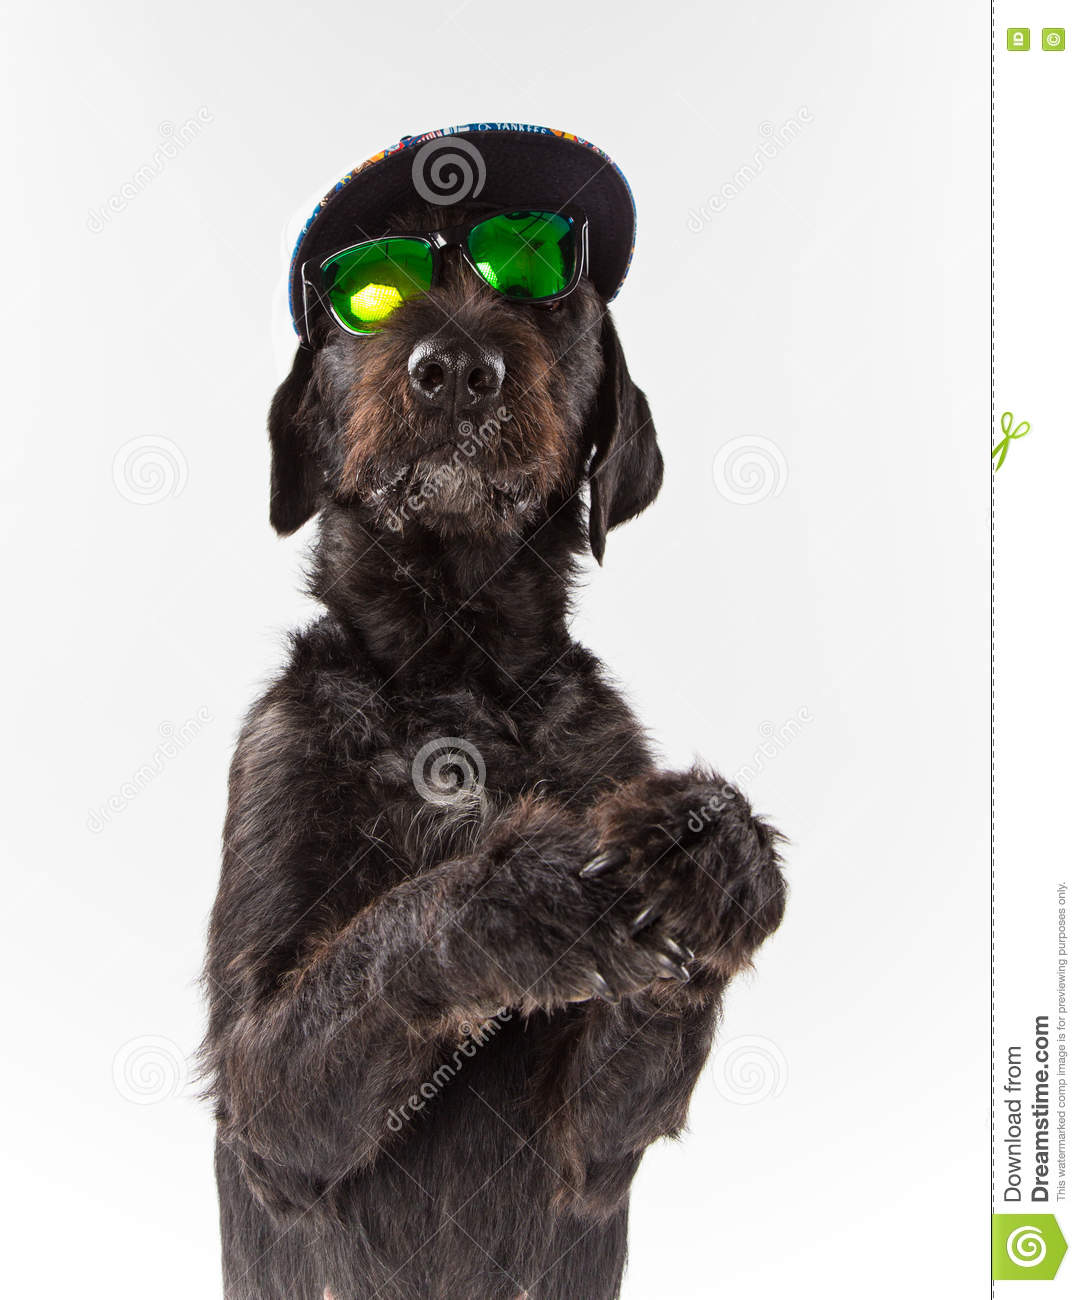 Black Dog Posed With Sunglasses And Cap. Stock Photo - Image of ...